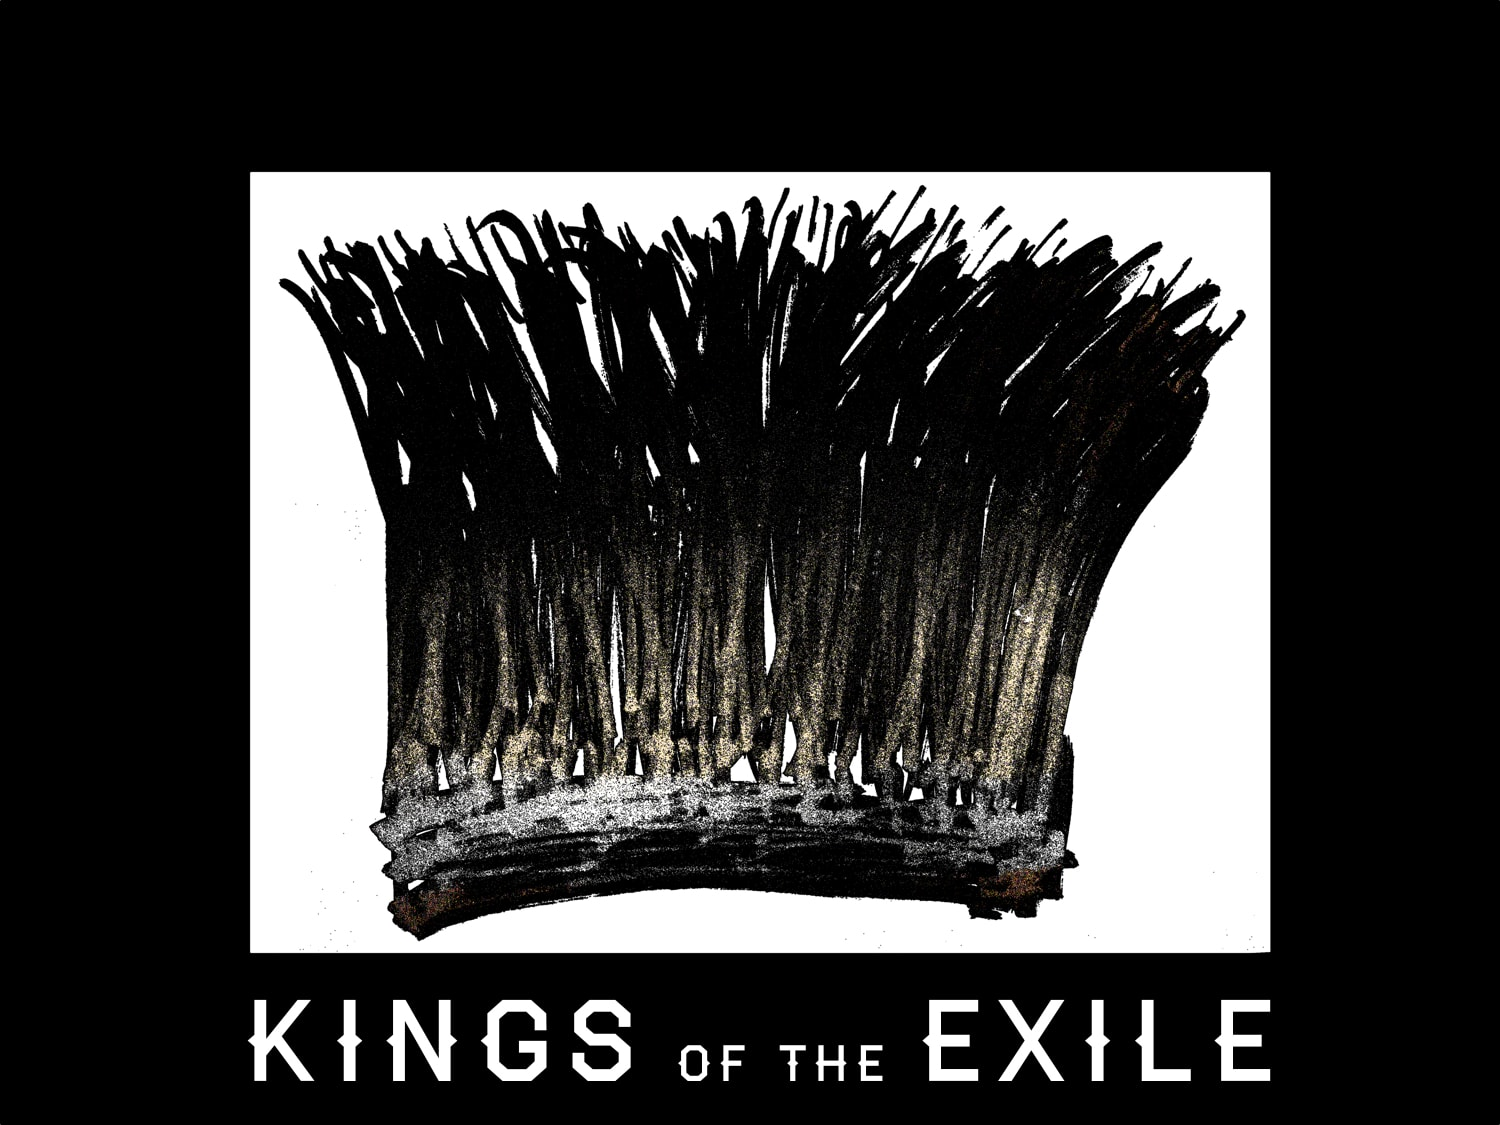 Kings of the Exile